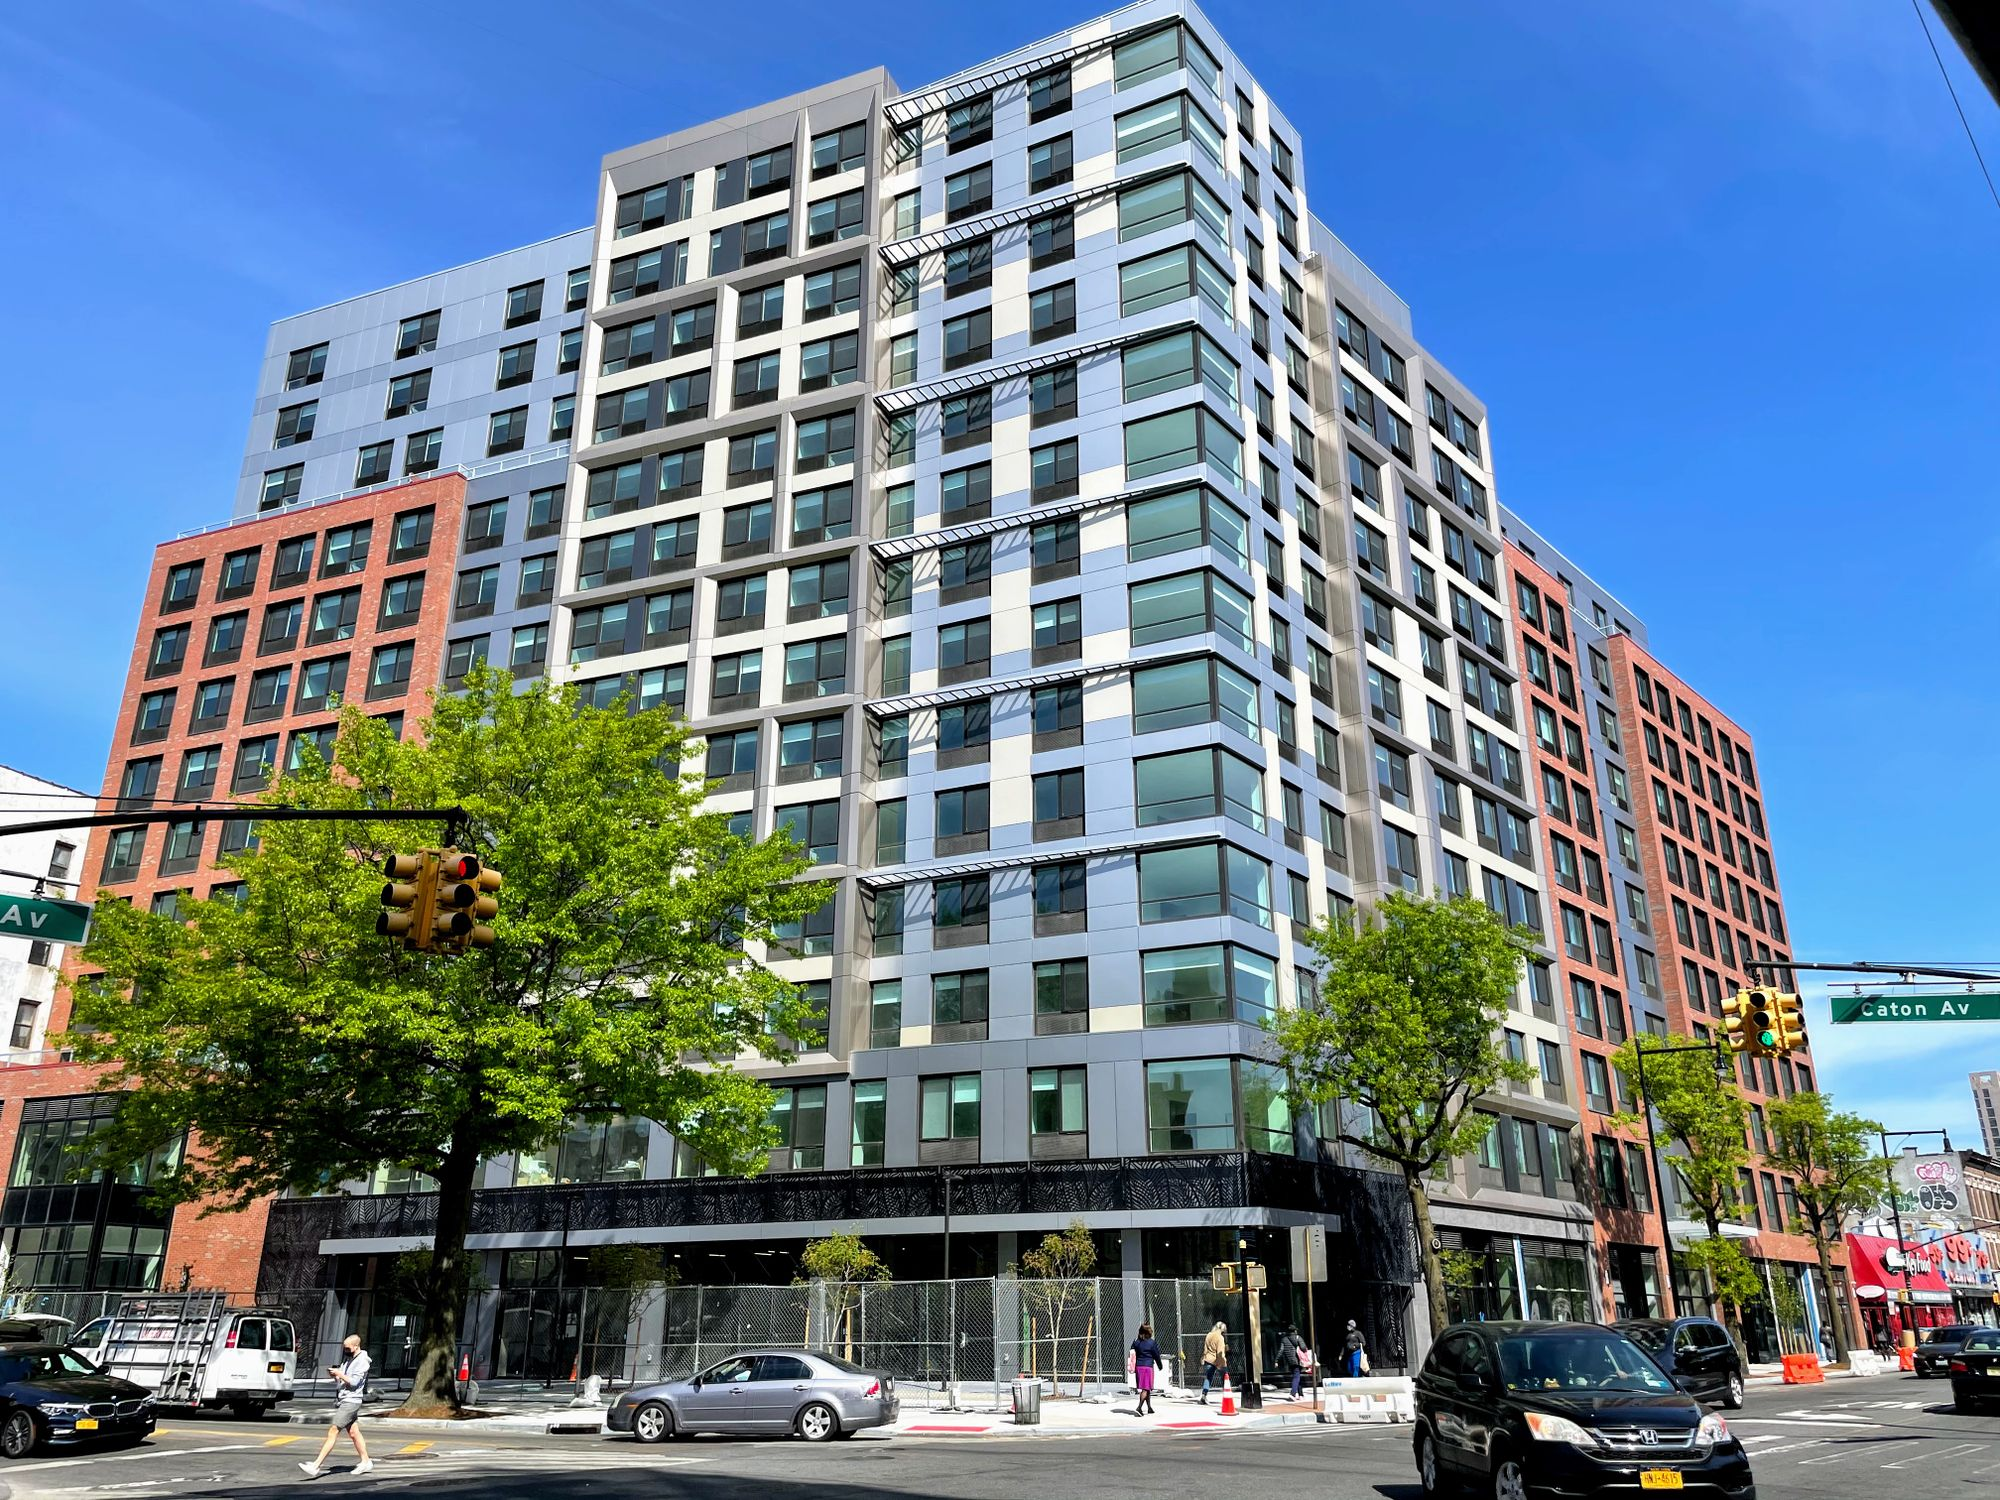 Caton Flats: Housing Lottery Opens for Below-Market Rate Apartments at Flatbush Development